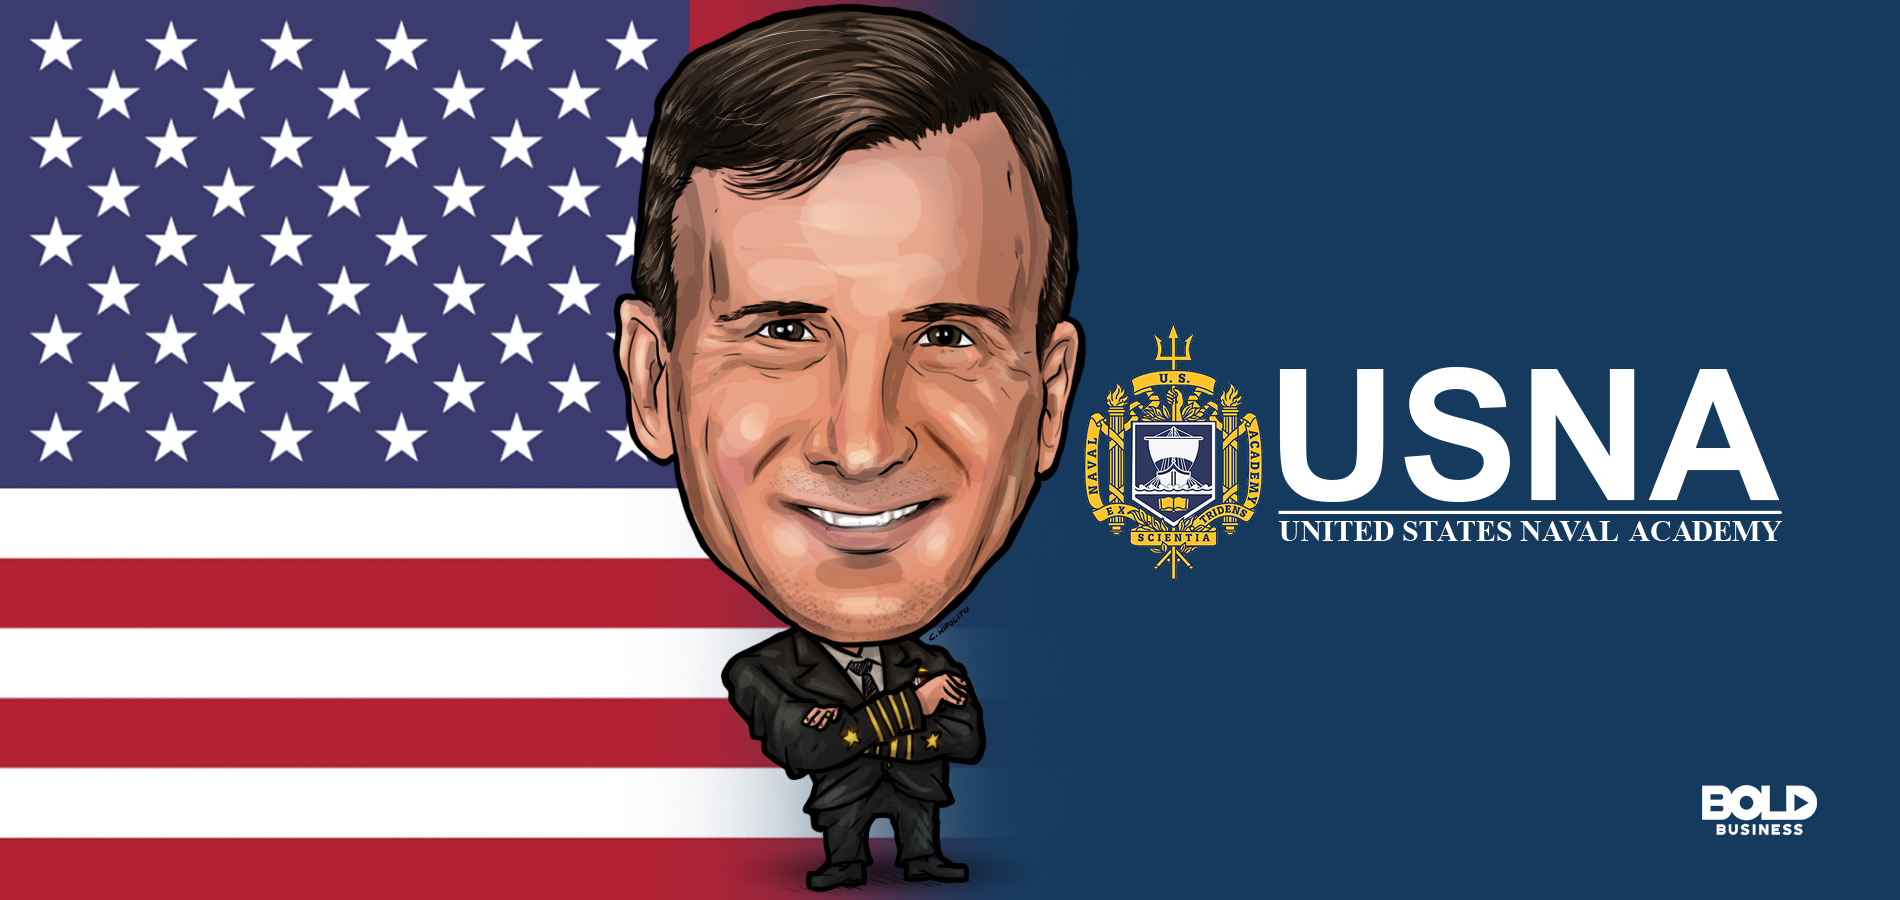 cartoon of captain robert chadwick with the united states naval academy logo beside him